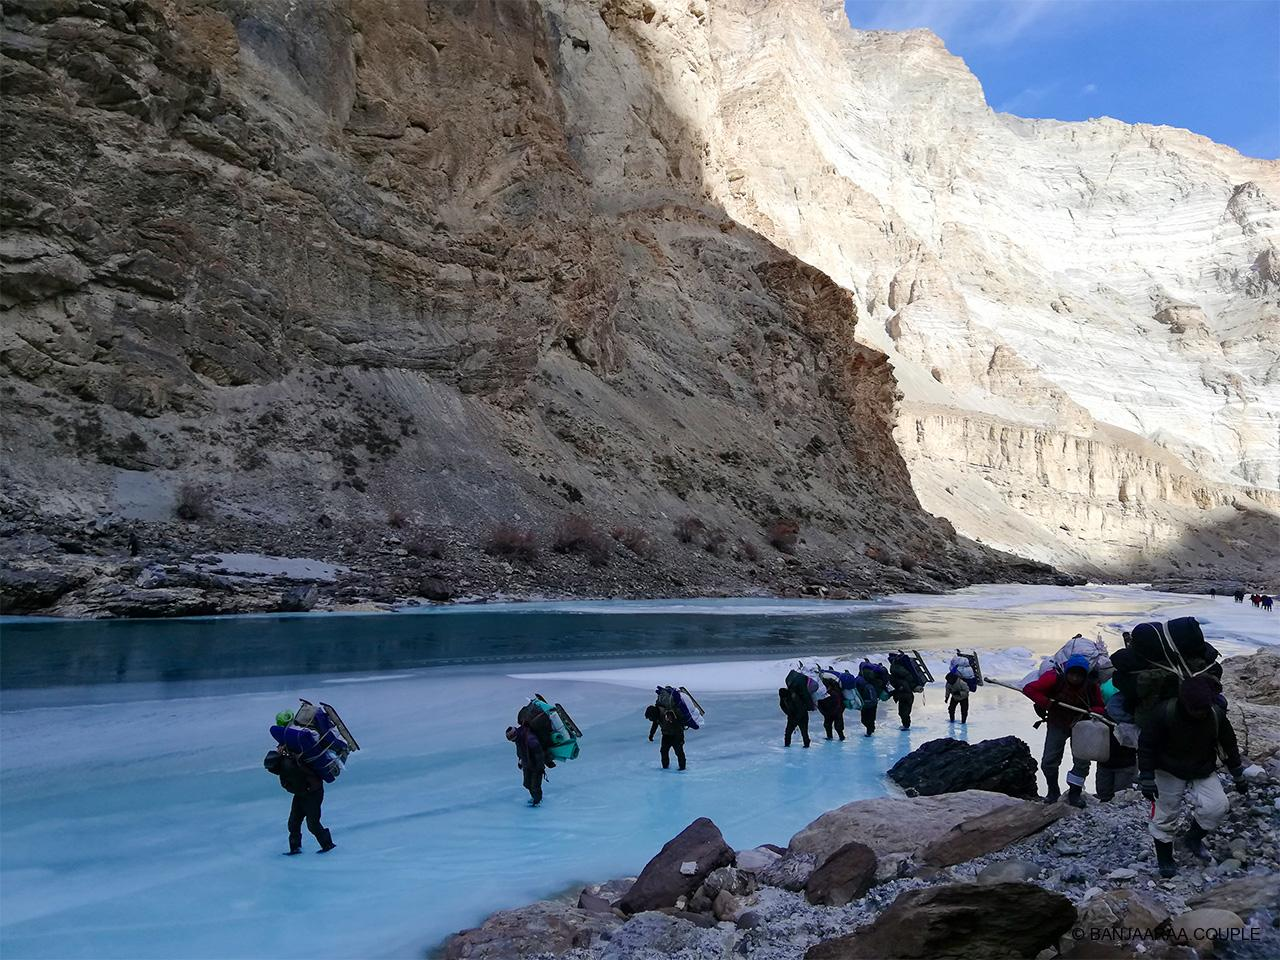 A walk on the frozen river - porters carrying the essentials